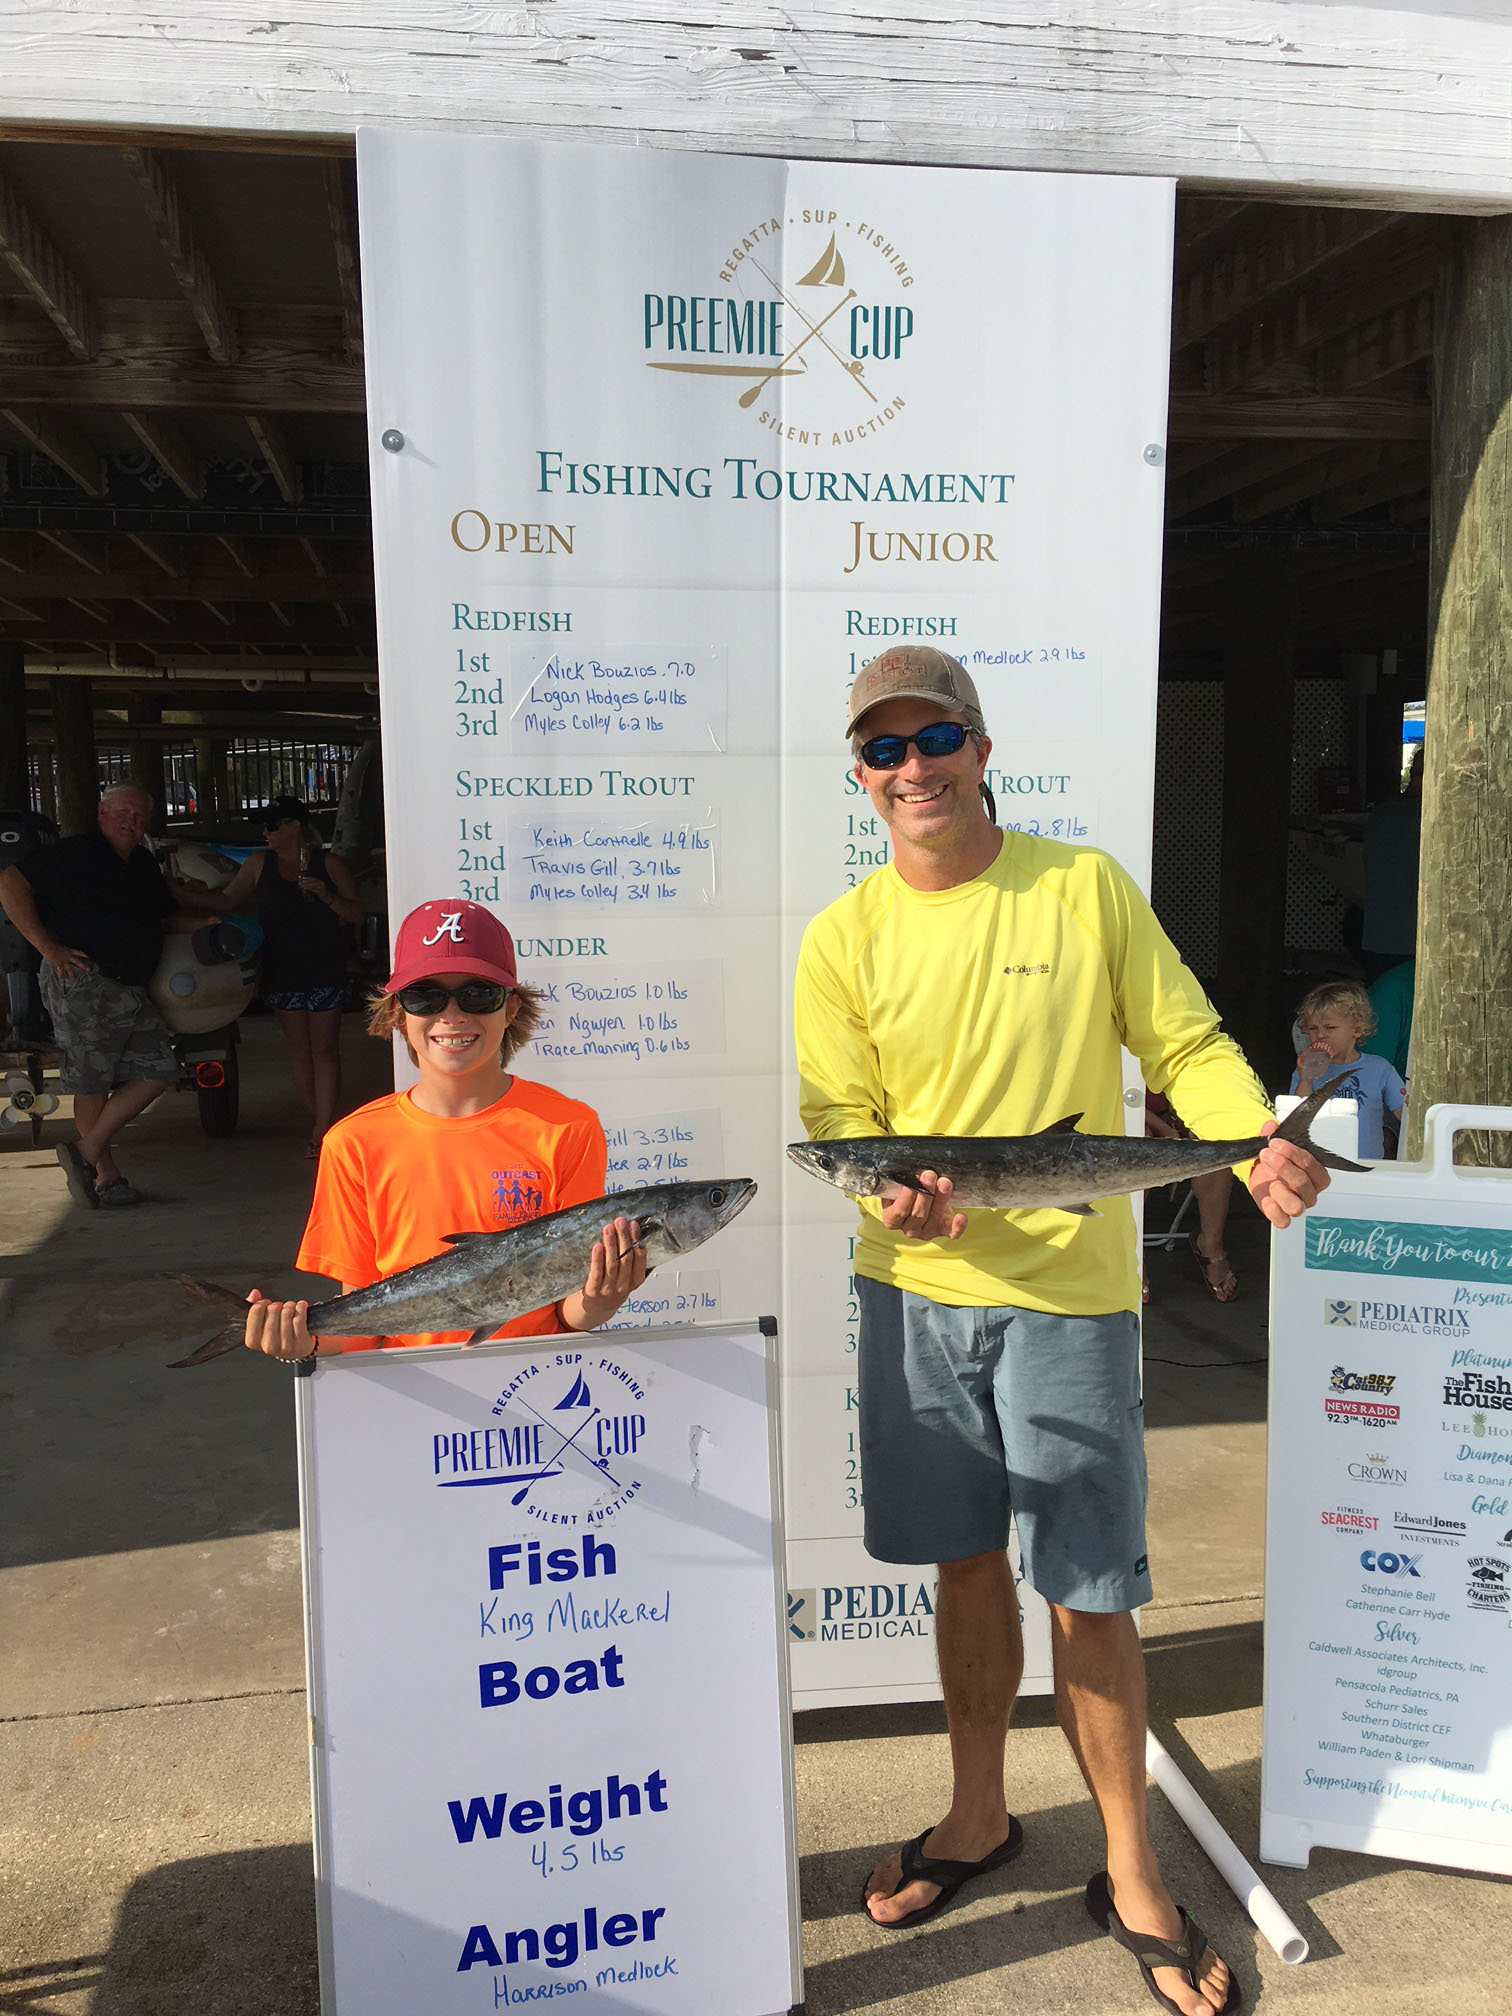 Pensacola Fishing Report 9/14/17